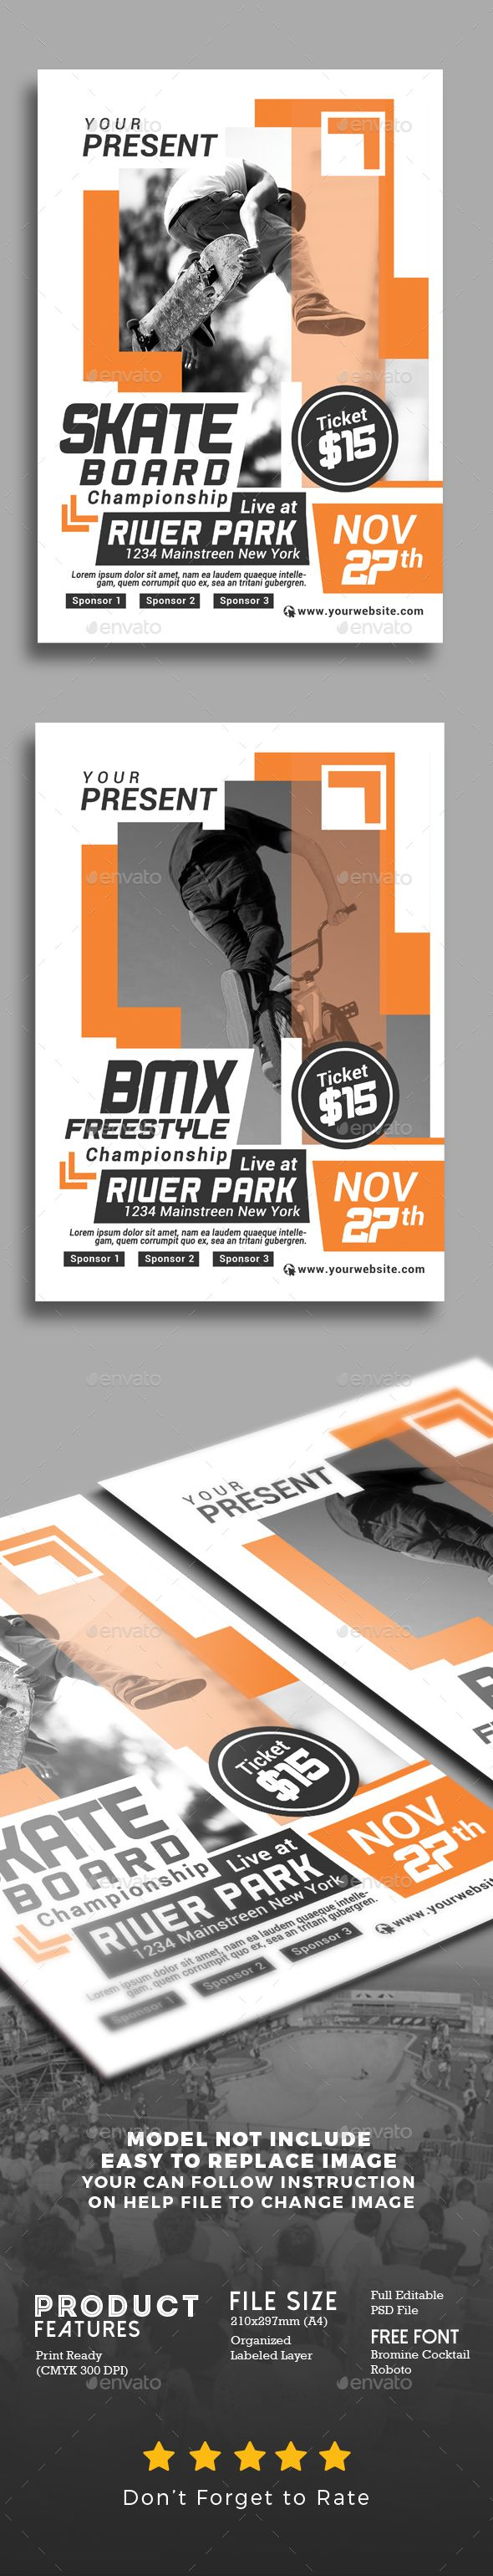 Extreme Sport Competition Flyer Template PSD